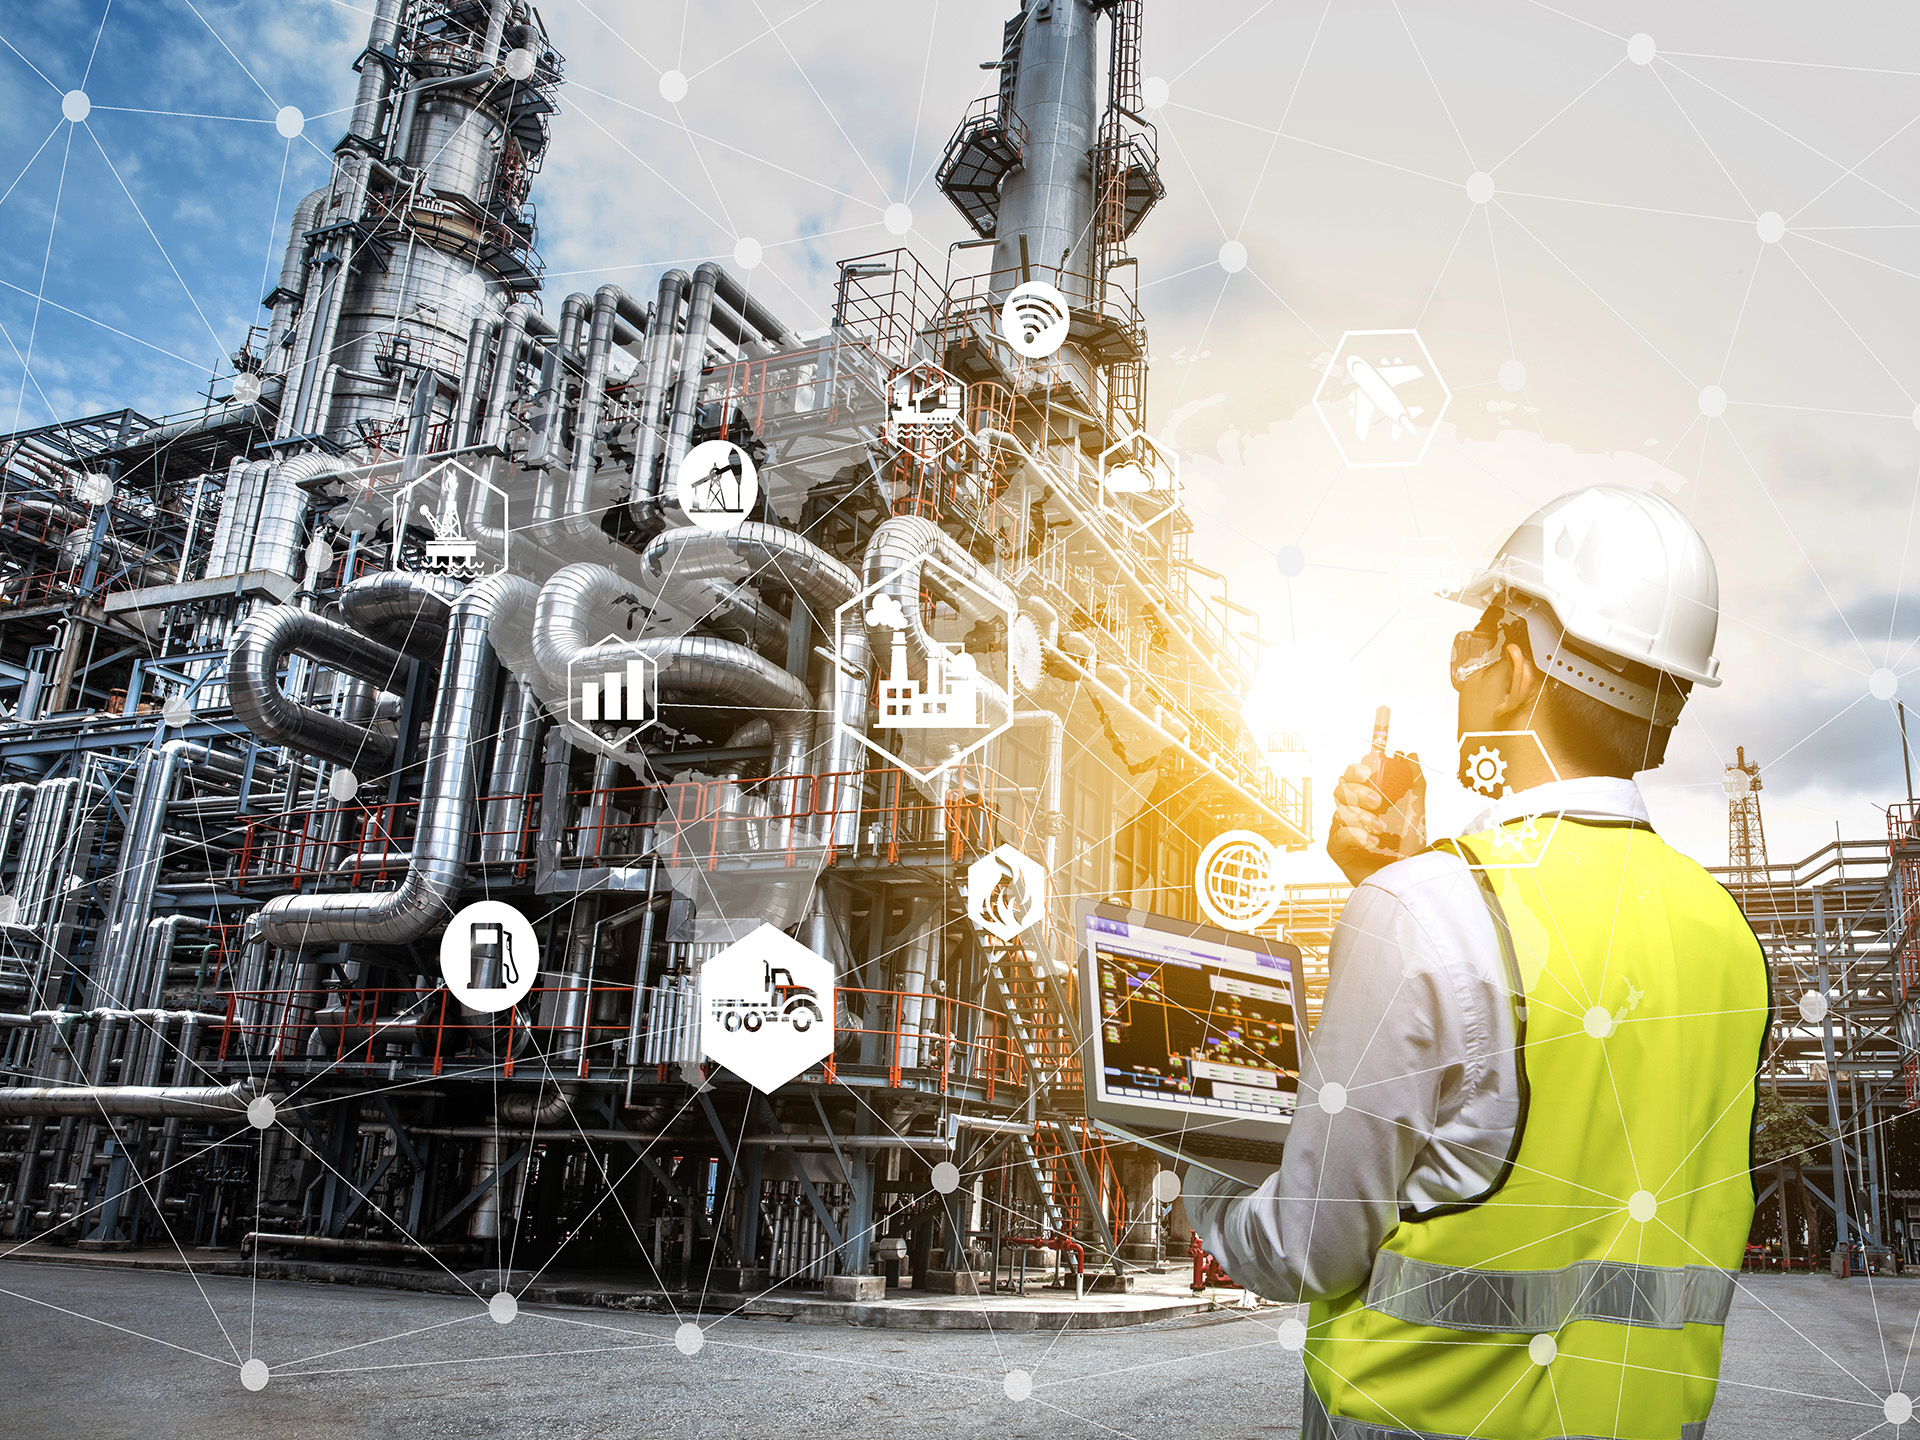 Engineer holding walkie talkie are working orders the oil and gas refinery plant. Industry petrochemical concept image and icon connecting networking using augmented reality technology.